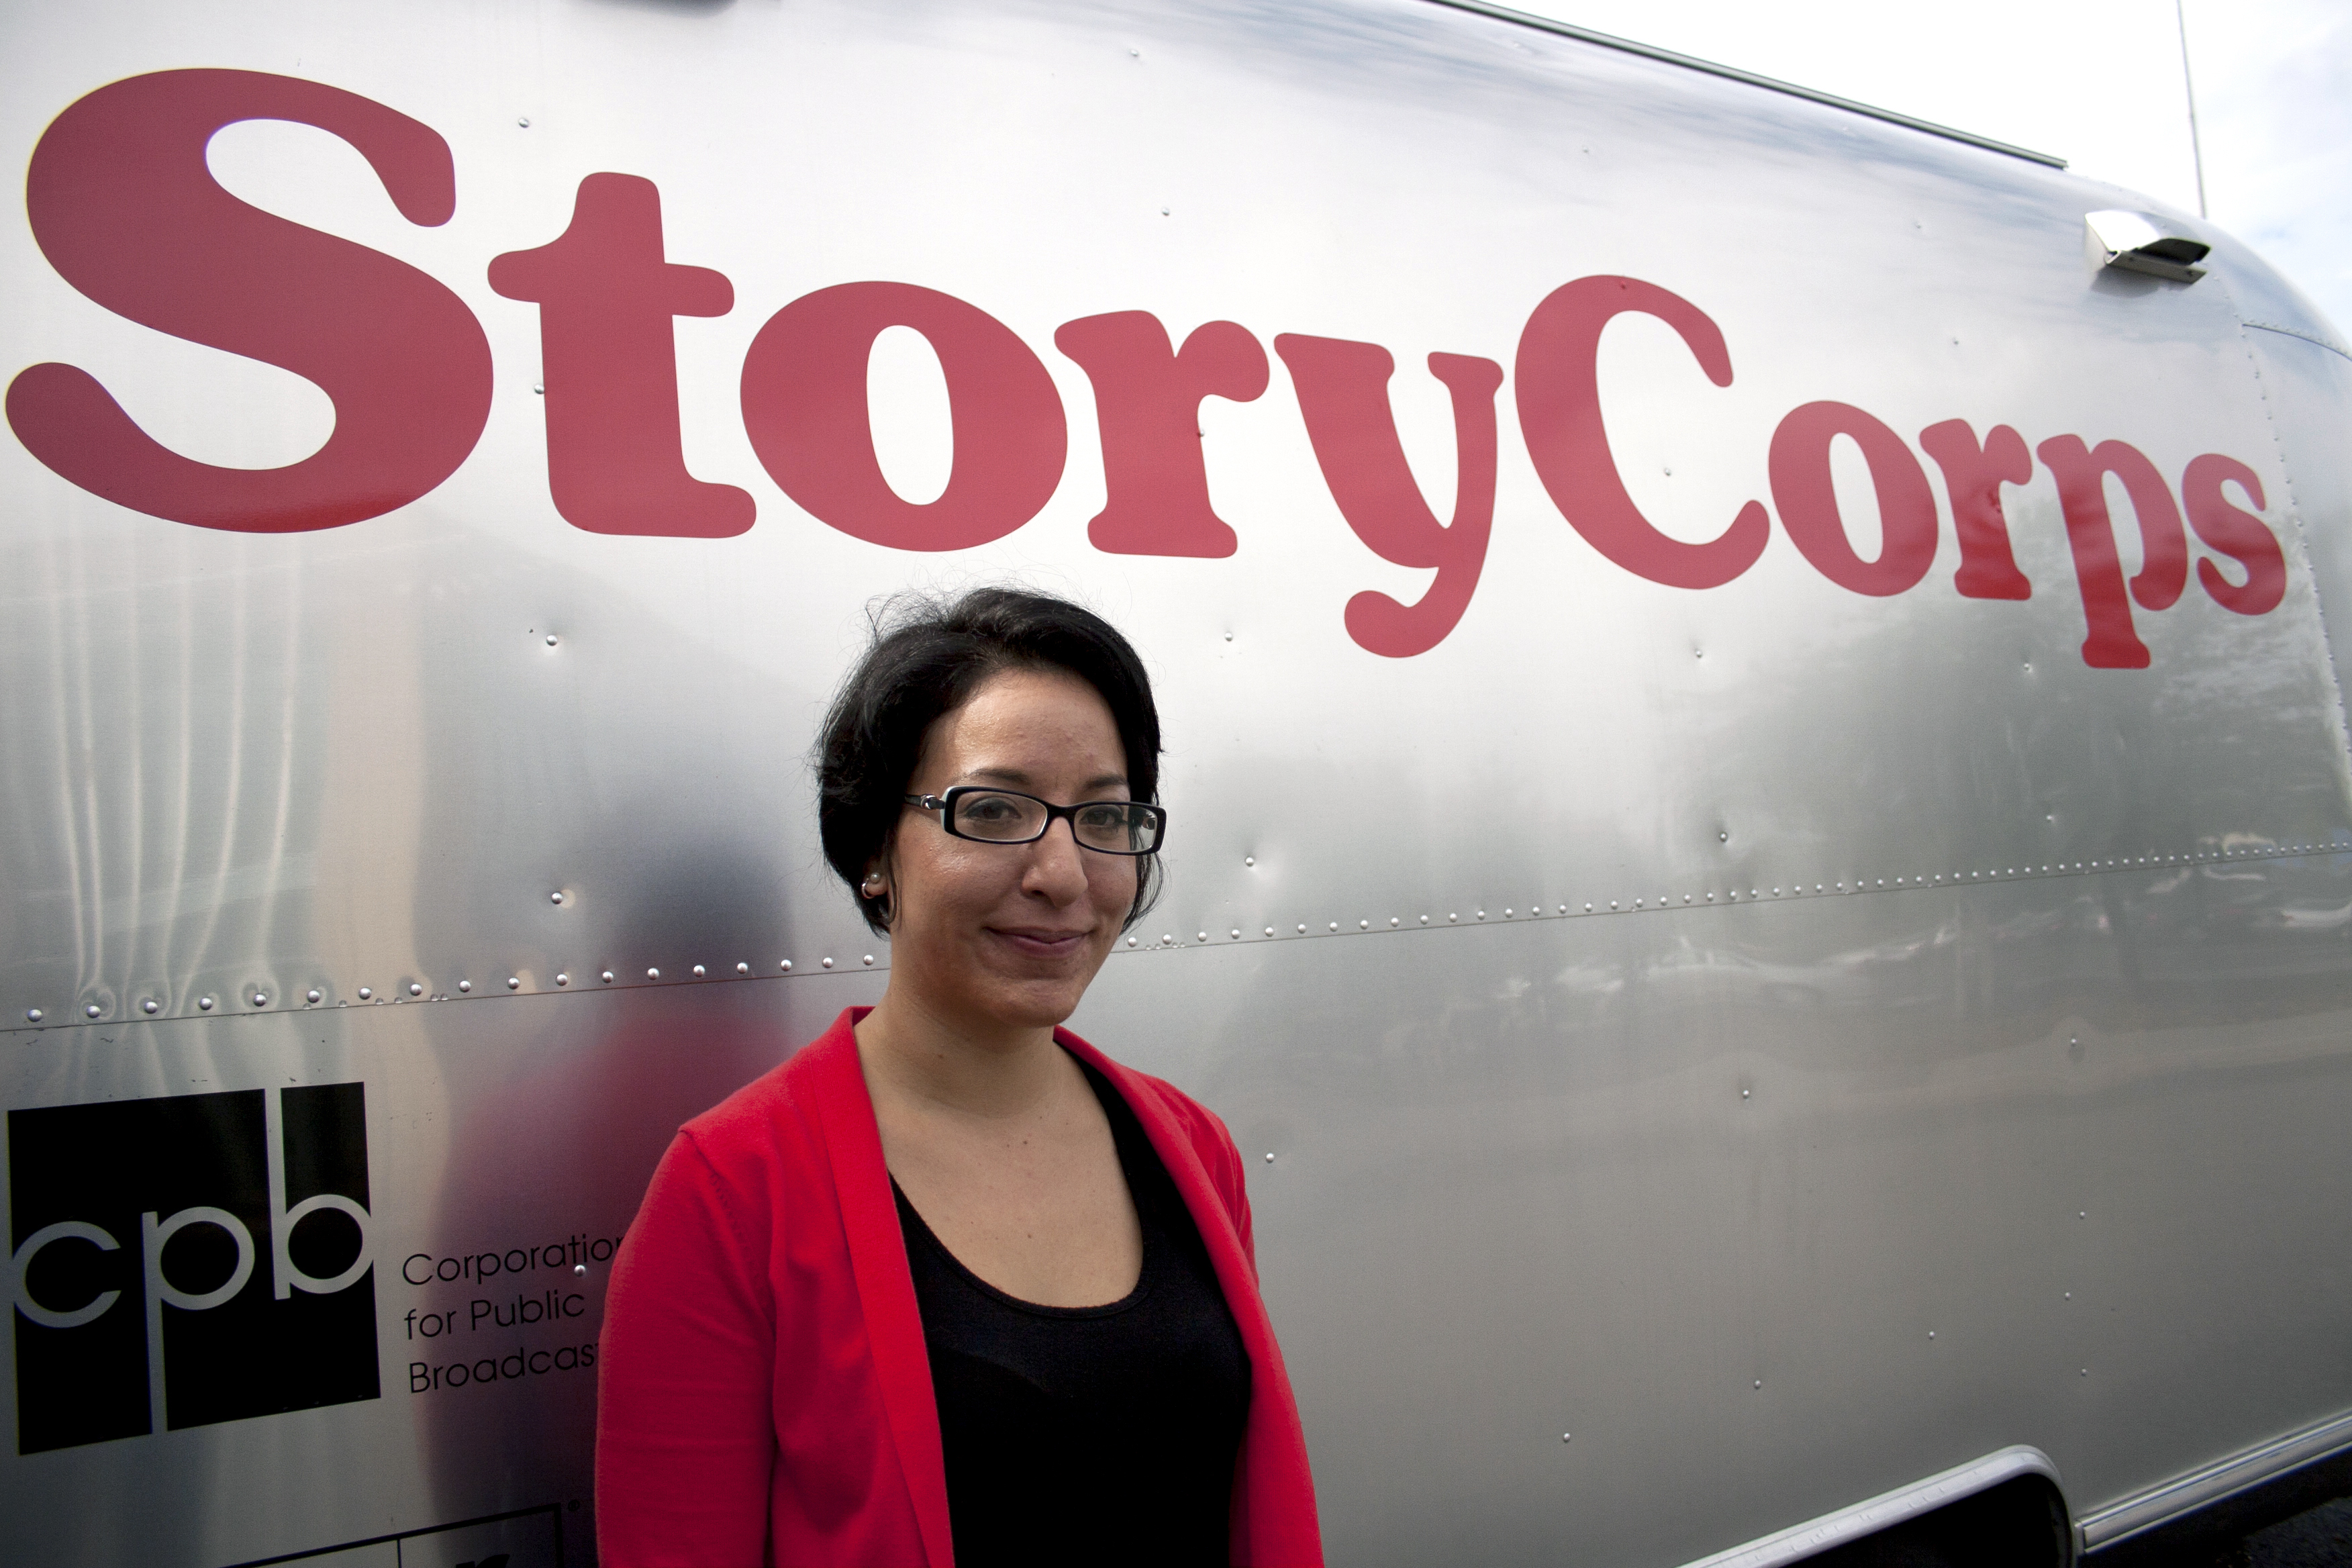 During a StoryCorps interview, participants can either talk to a friend or loved one, or StoryCorps facilitators like Virginia Lora, pictured, can conduct the interview. Facilitators also support the interviews with prompts or questions to drive the conversation, if needed.